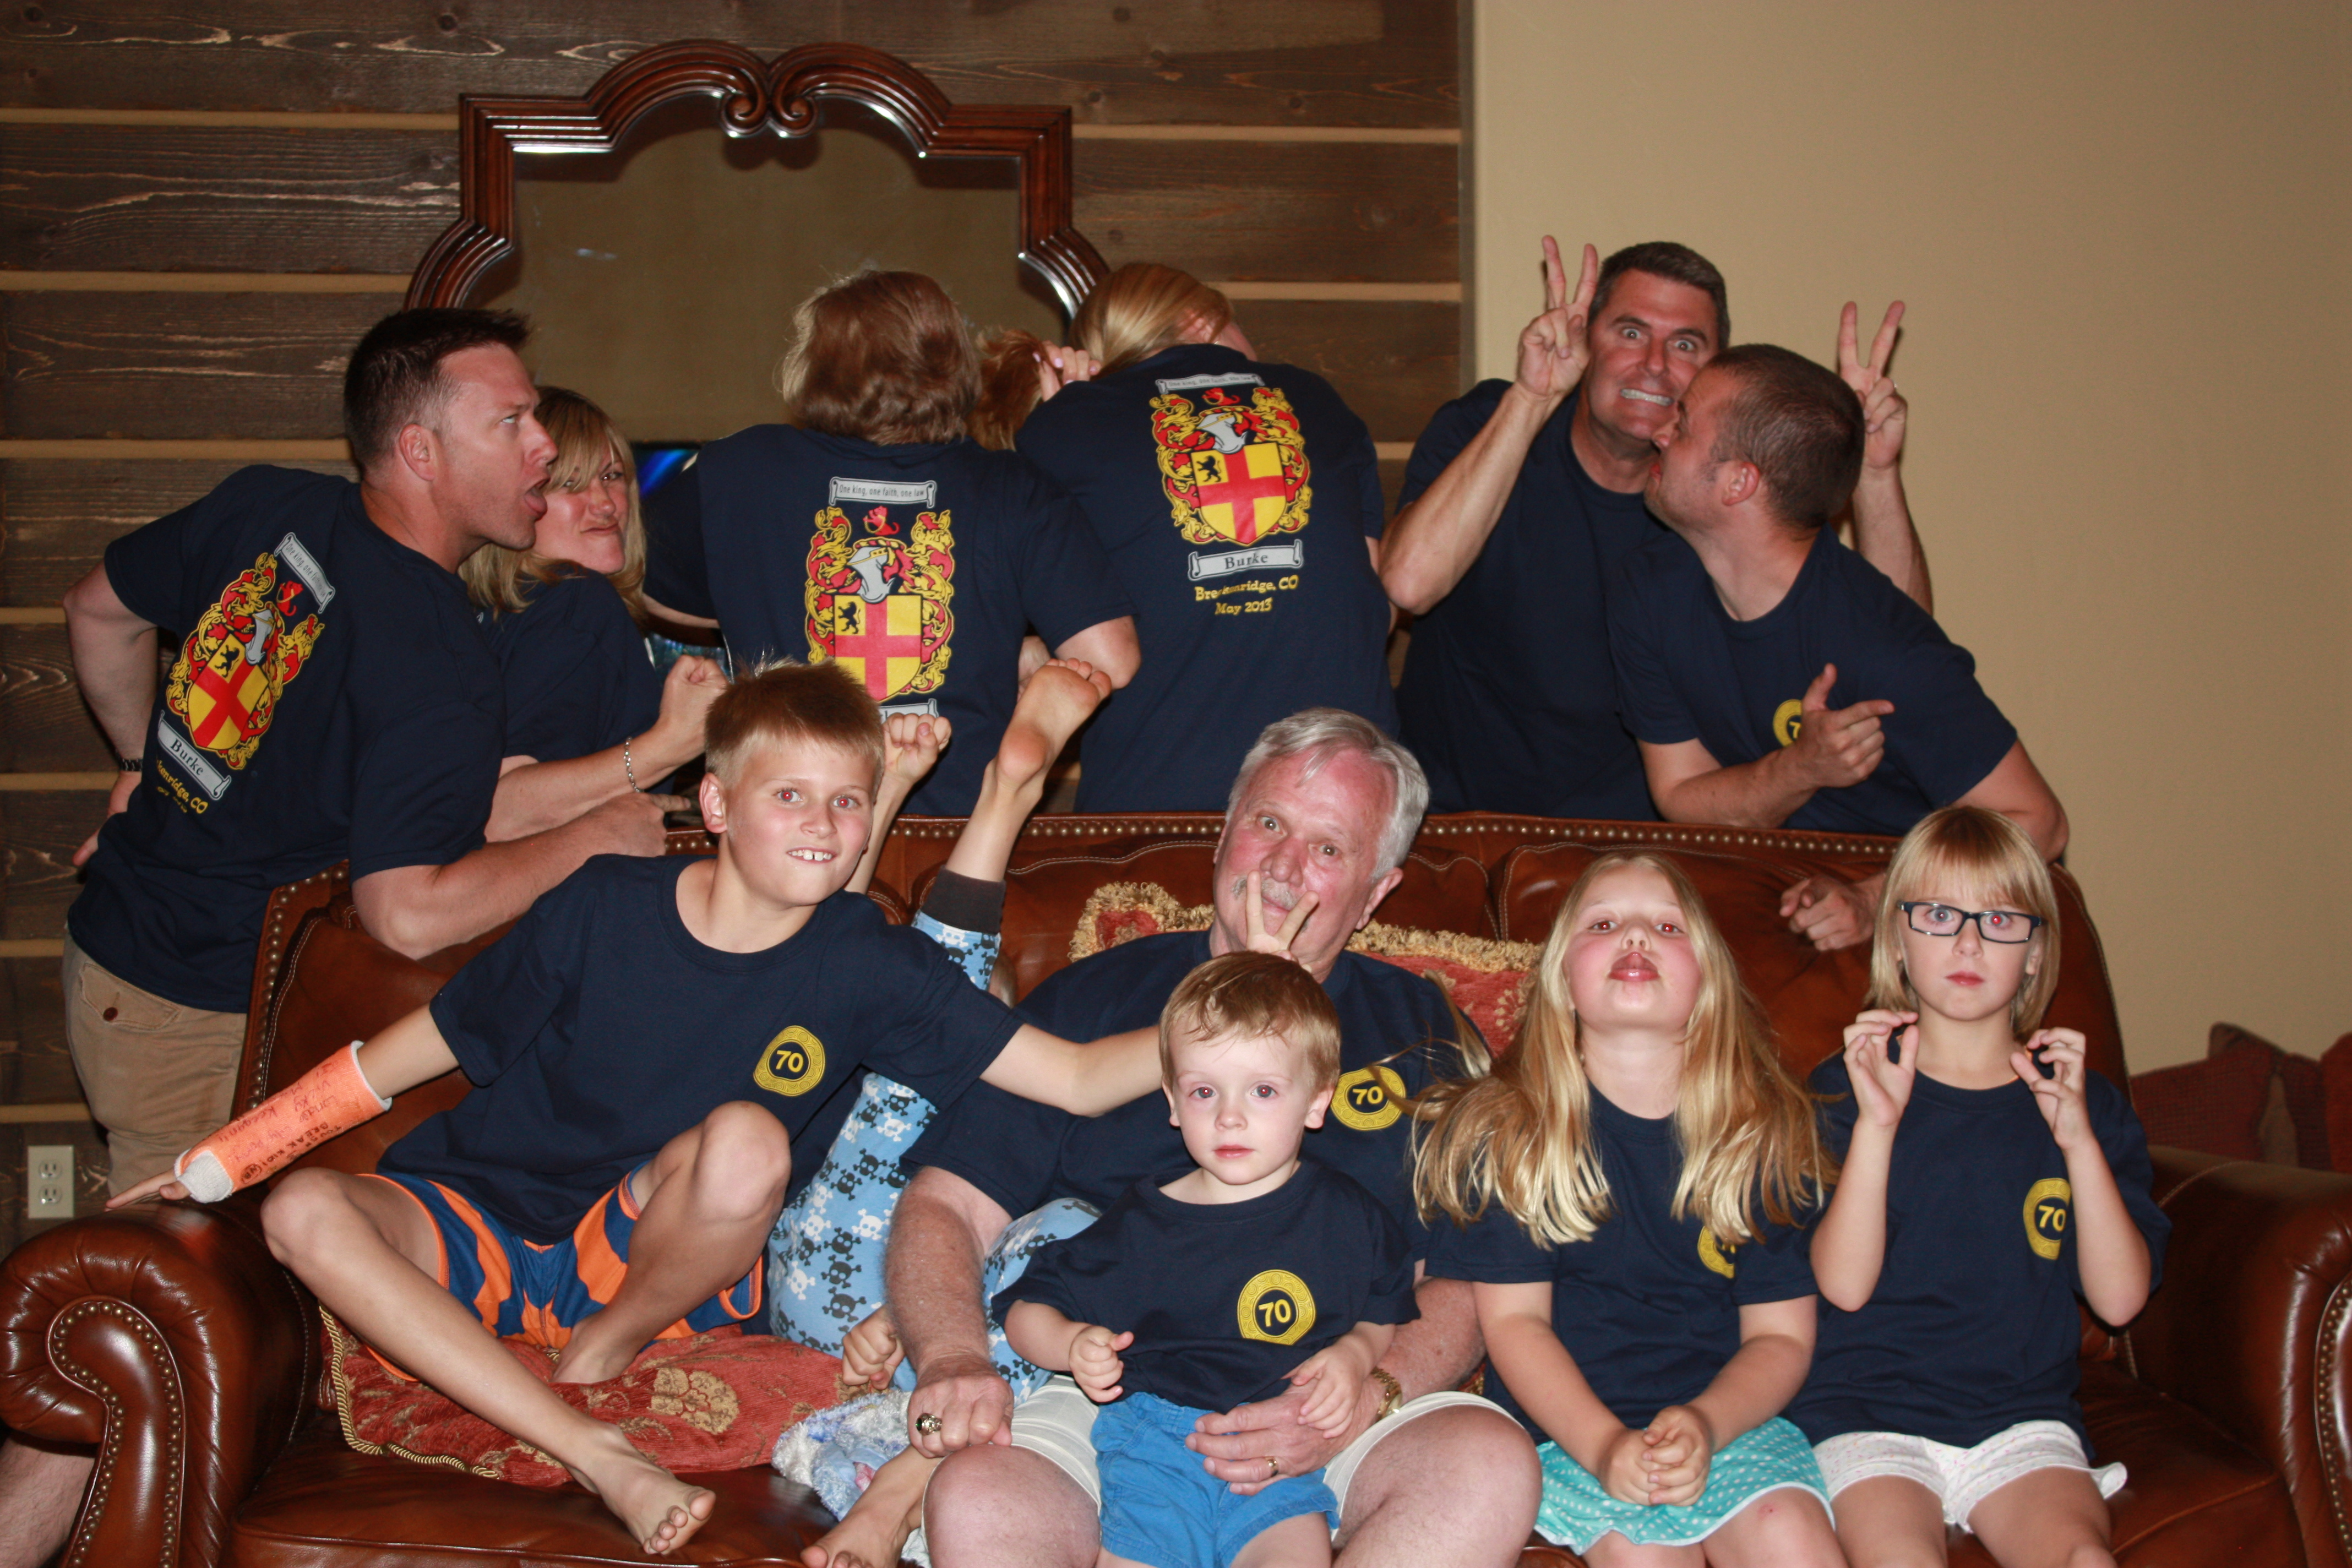 Design your own t-shirt birthday party - Dad S 70th Birthday Celebration T Shirt Photo